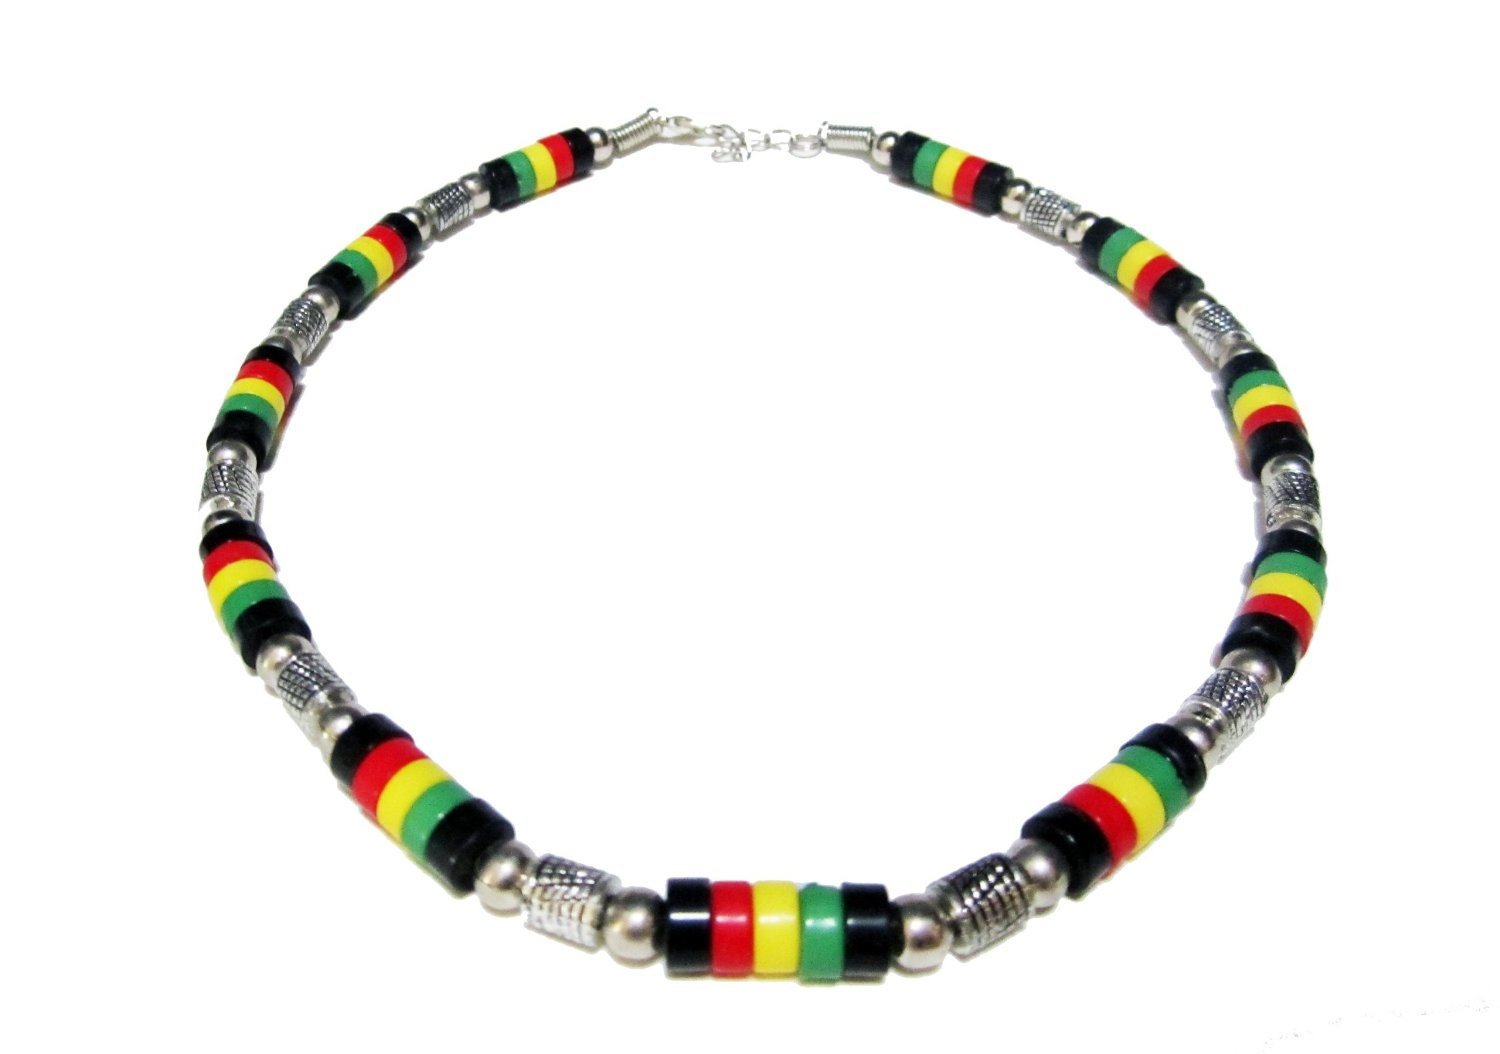 rasta necklace jamaican style surfer necklace